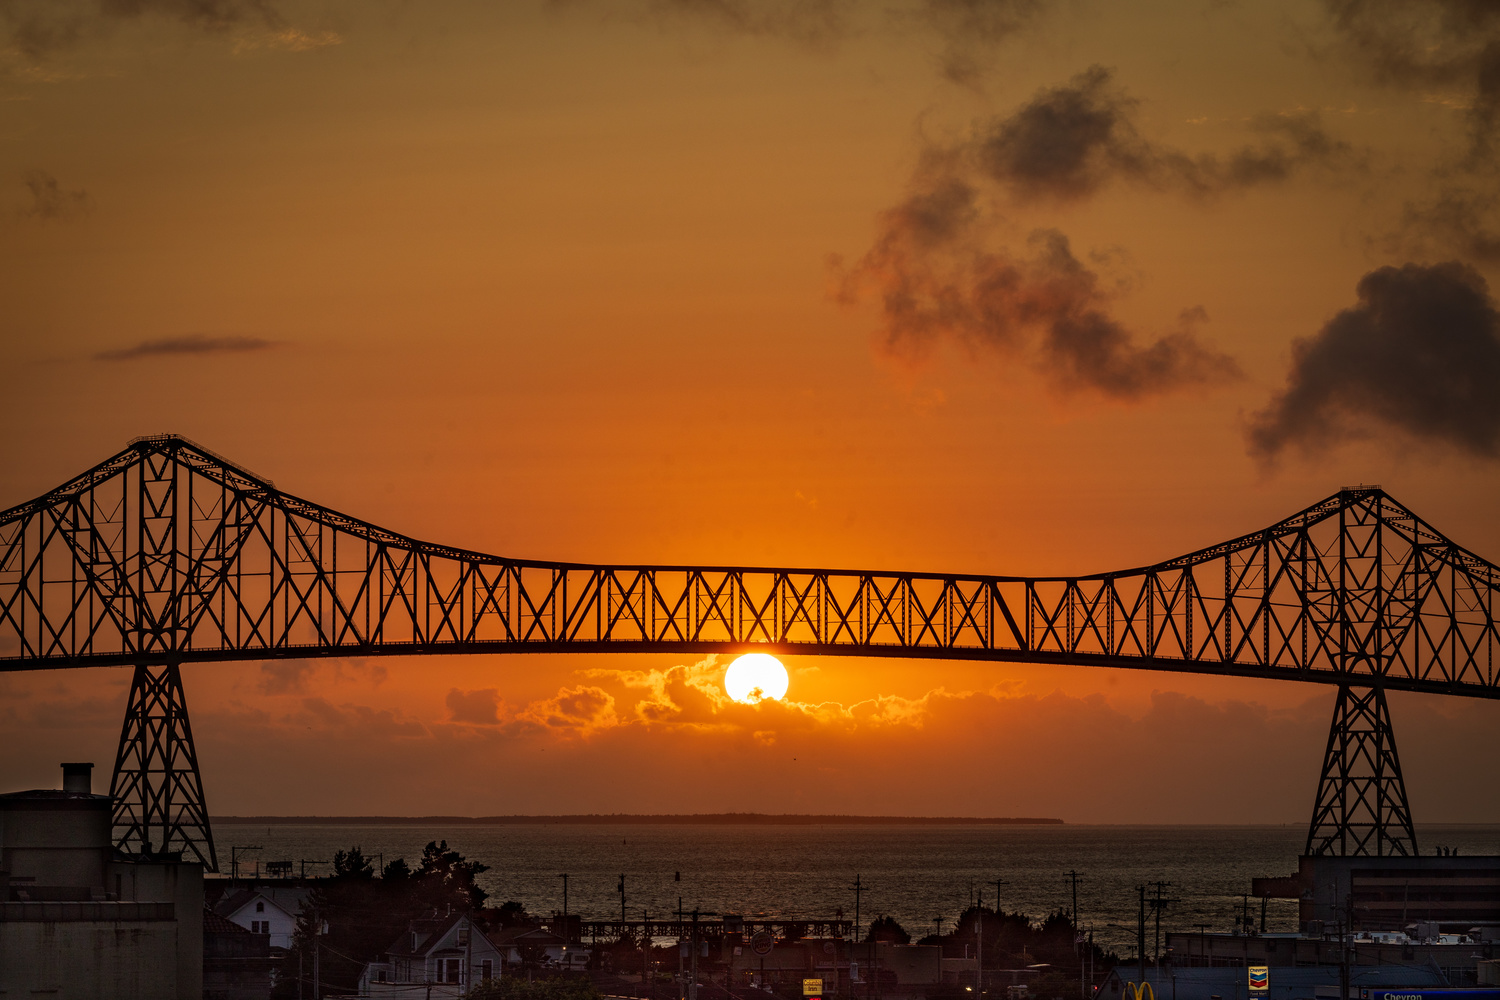 Sunset on the Bridge to Nowhere by dean wilson